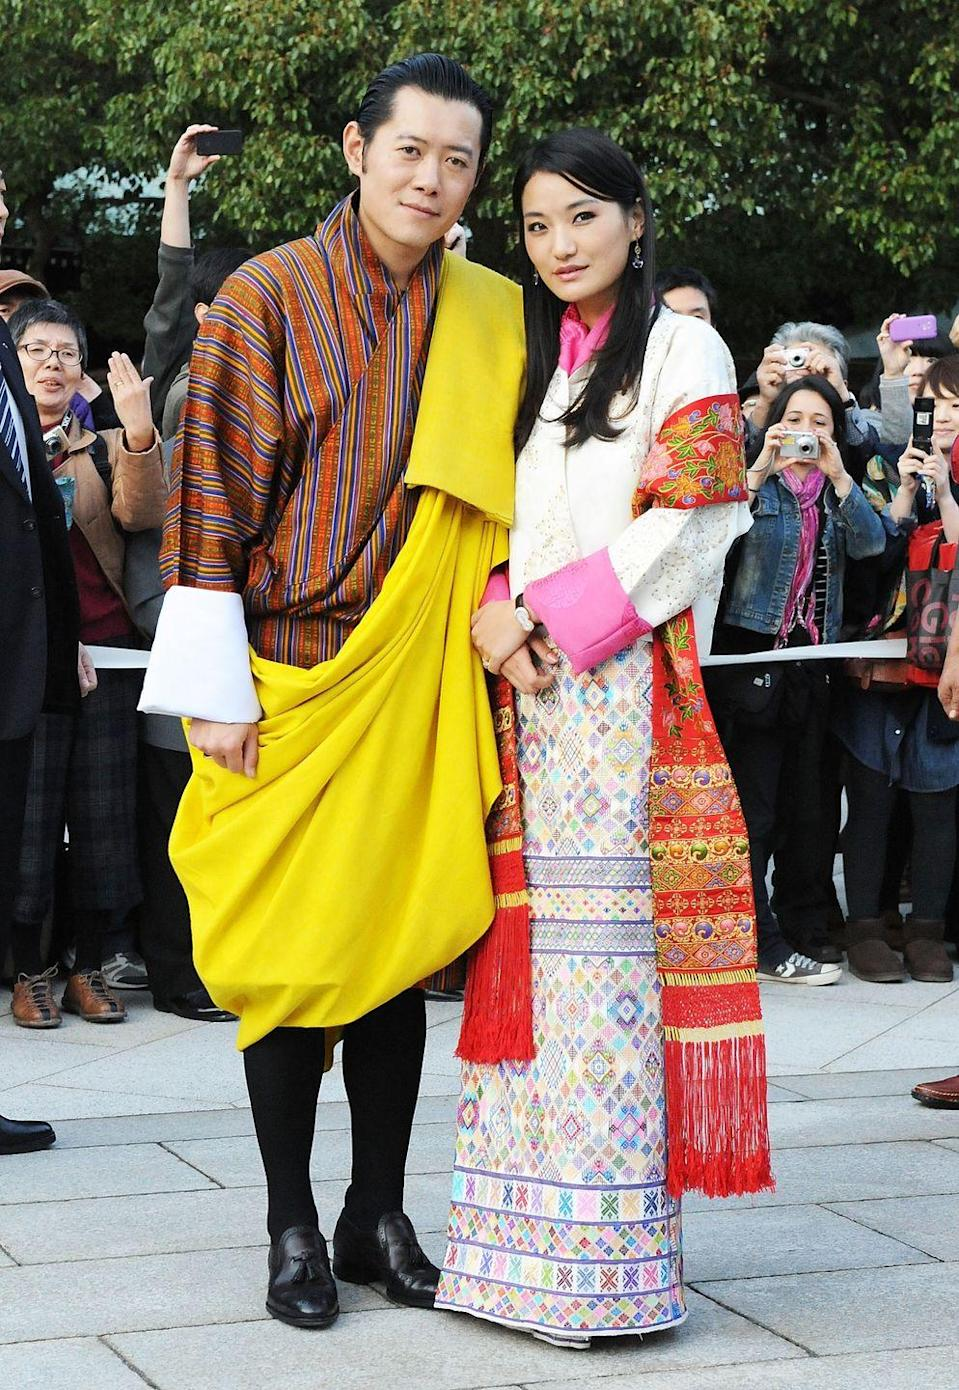 "<p>Jetsun became a queen at age 21 when she married the King of Bhutan in 2011. Before she met the ""Dragon King"" (a nickname of his), she attended Regent's College in London, studying international relations, psychology, and art history. They share the experience of British schooling, as the king attended Oxford for his studies. </p>"